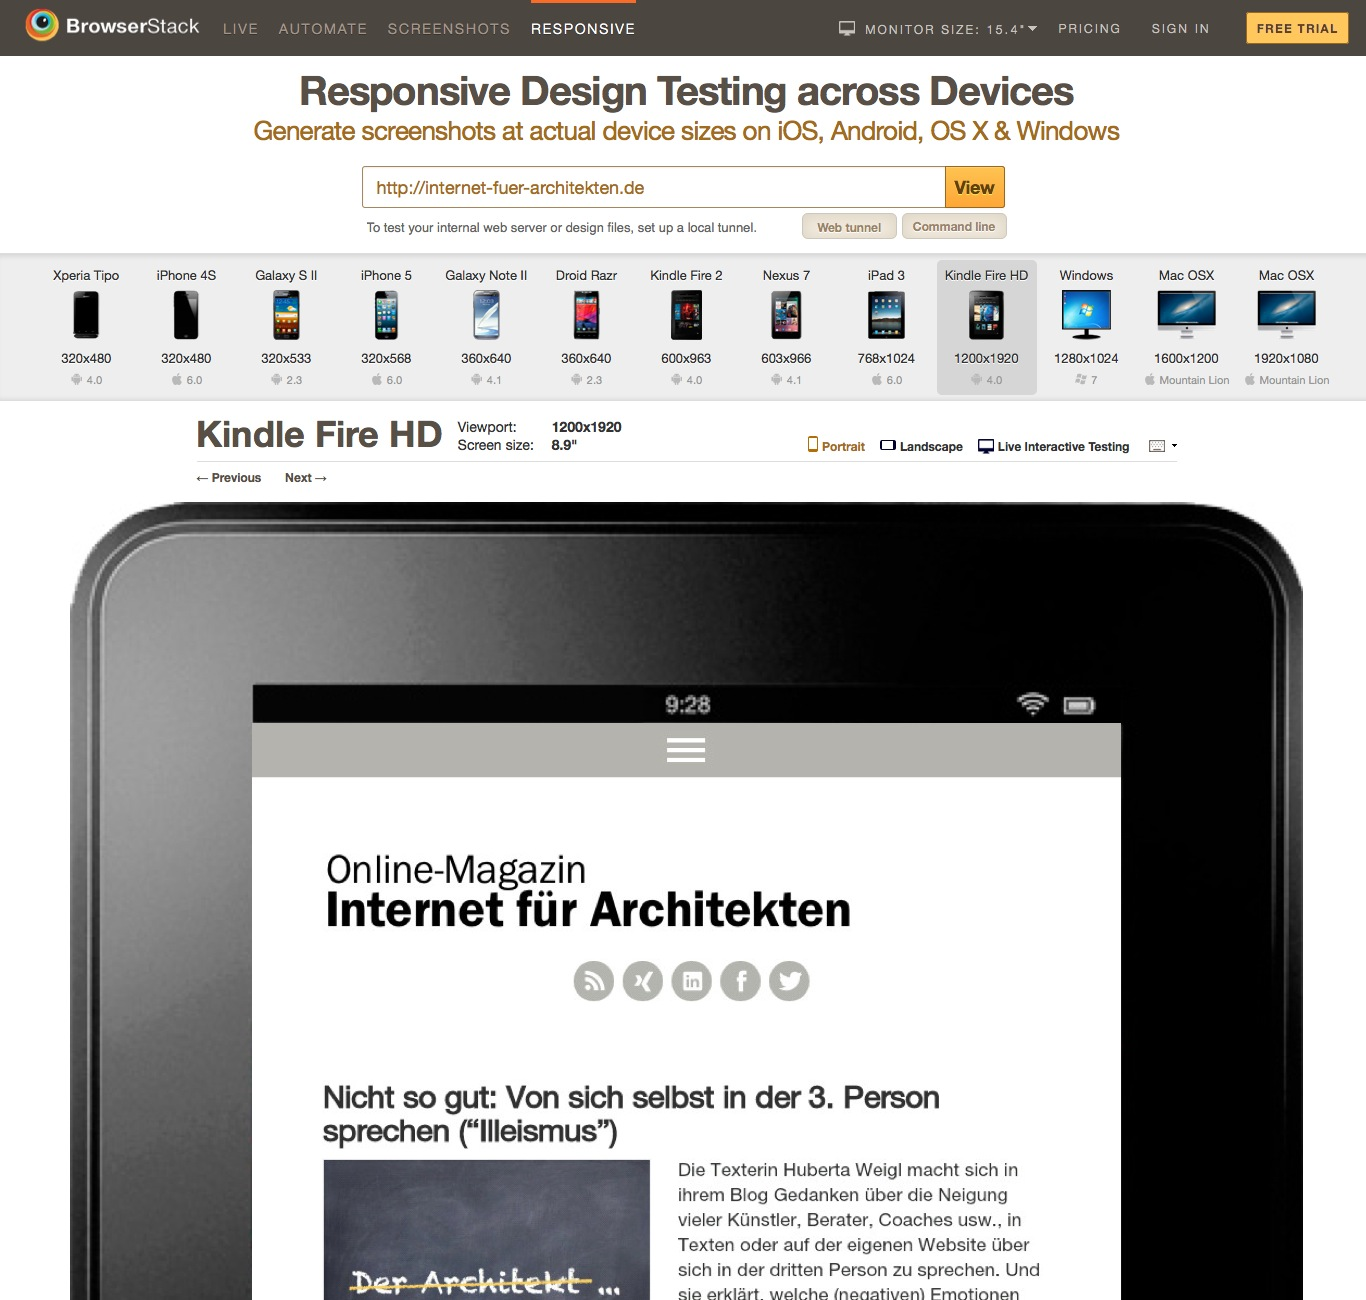 Screenshot des Test-Tools für responsive Webdesign von Browserstack: Internet-fuer-Architekten.de auf dem Amazon Kindle Fire